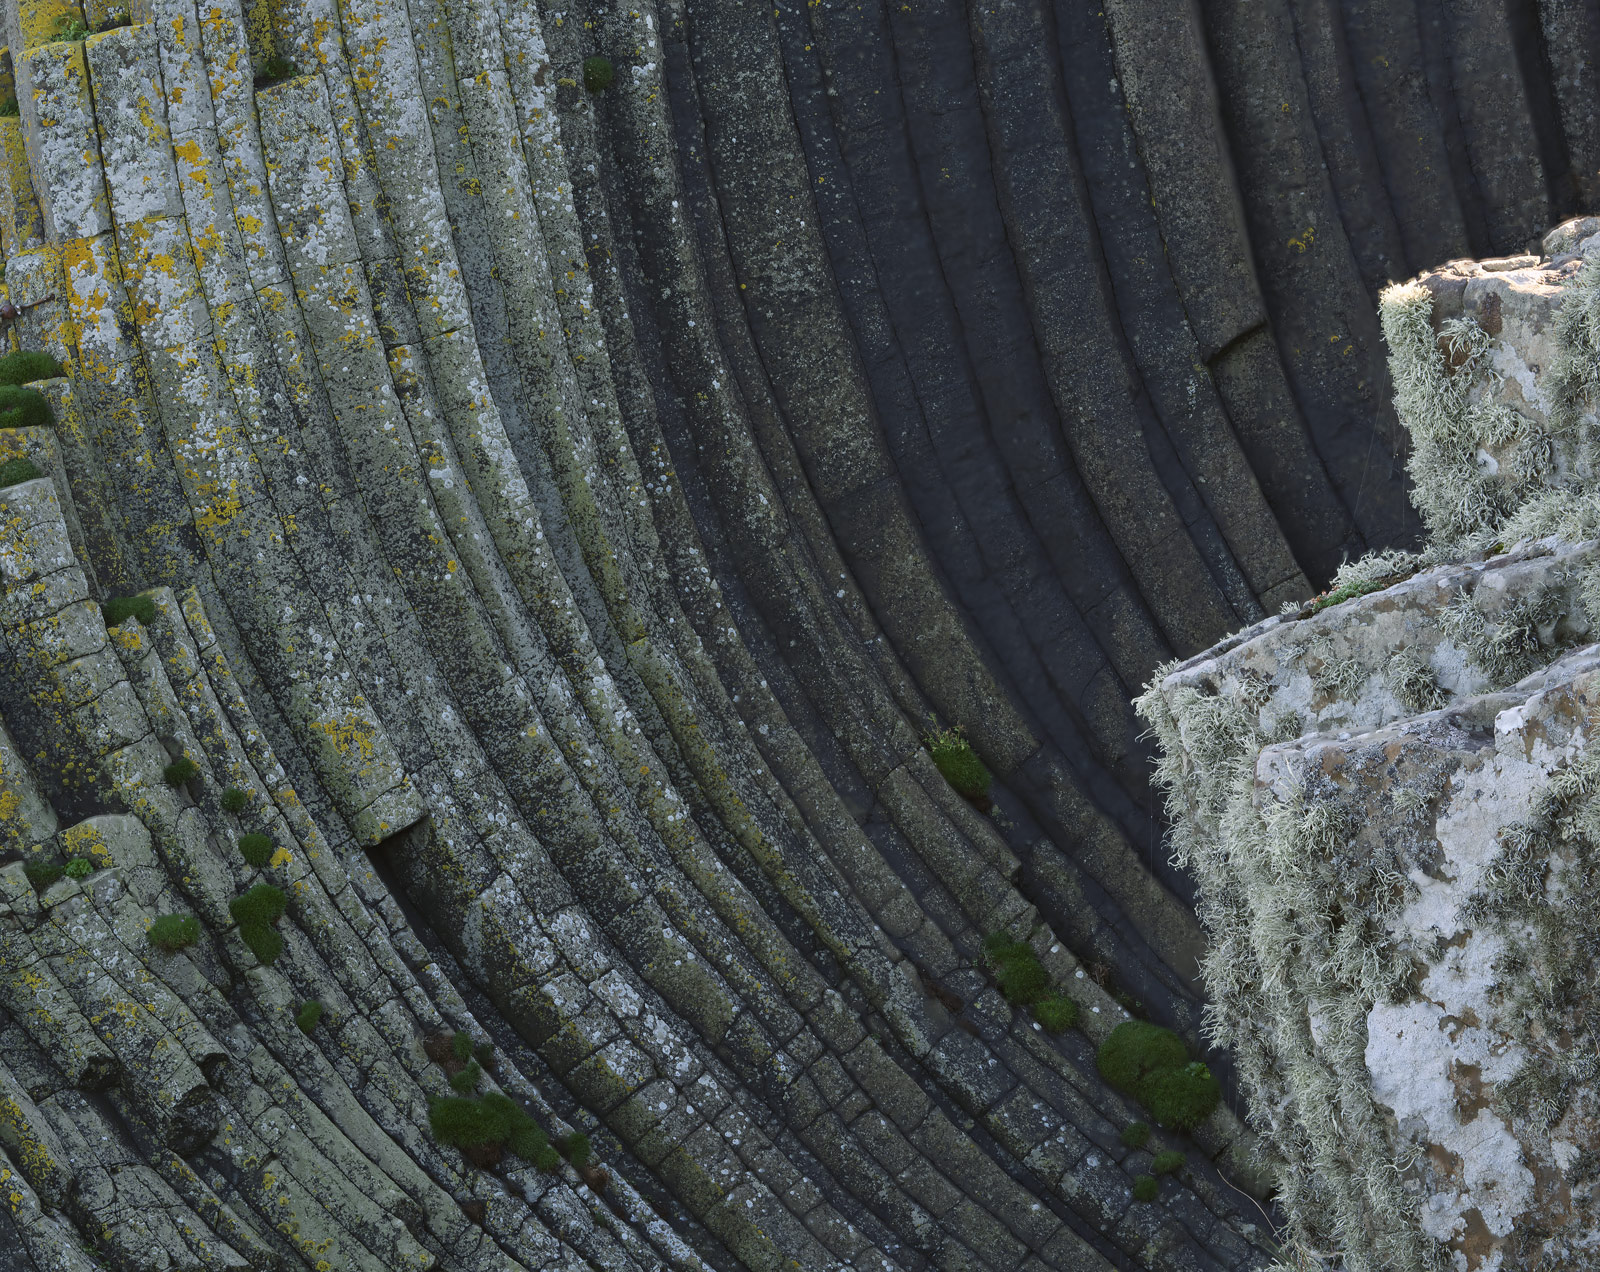 The basalt columns on Staffa are usually just that straight vertical columns of fractured grey hexagonal cross-sectioned rock...